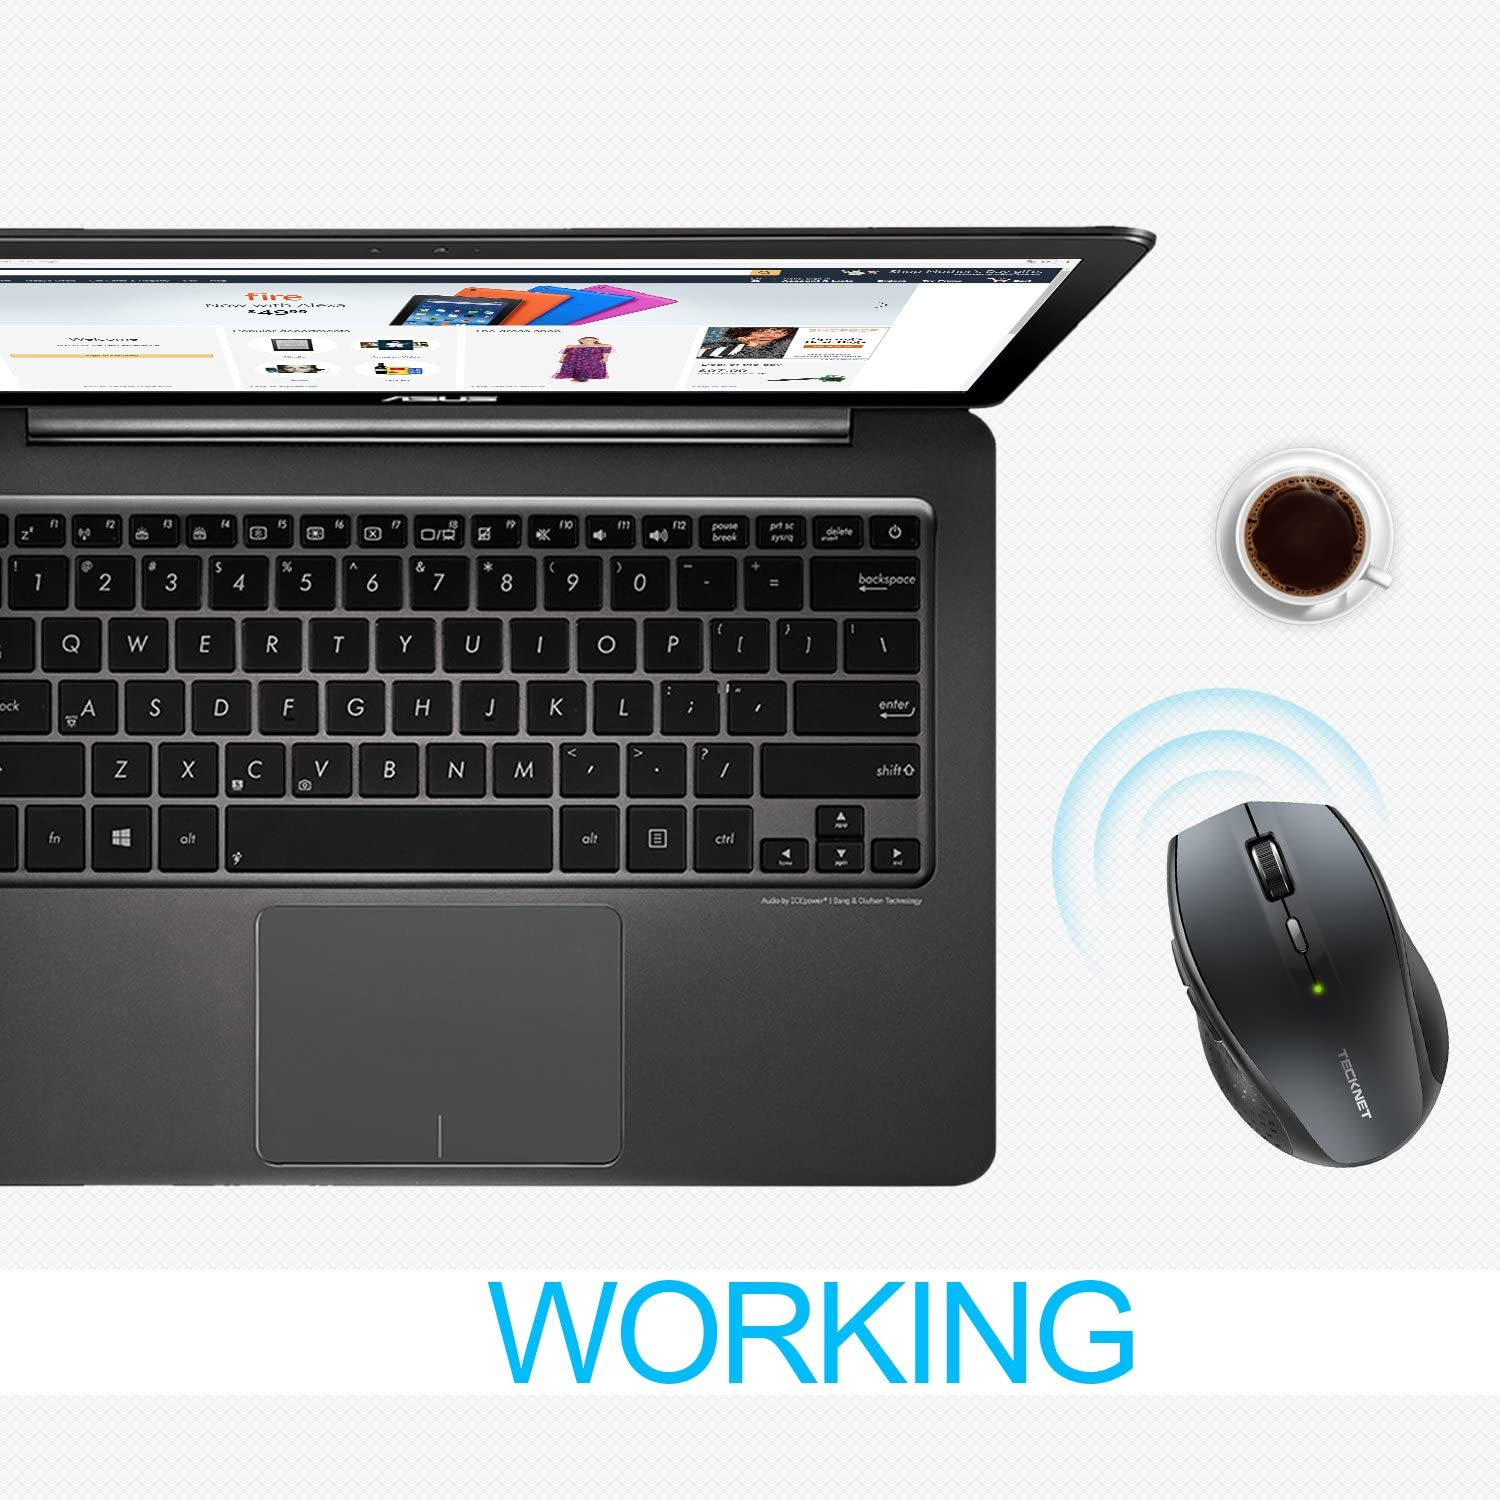 TECKNET Bluetooth Wireless Mouse, 5 Adjustable DPI Levels, 24-Month Battery Life, 6 Buttons Compatible for Ipad/Laptop/Surface Pro/Windows Computer /Chromebook-Grey